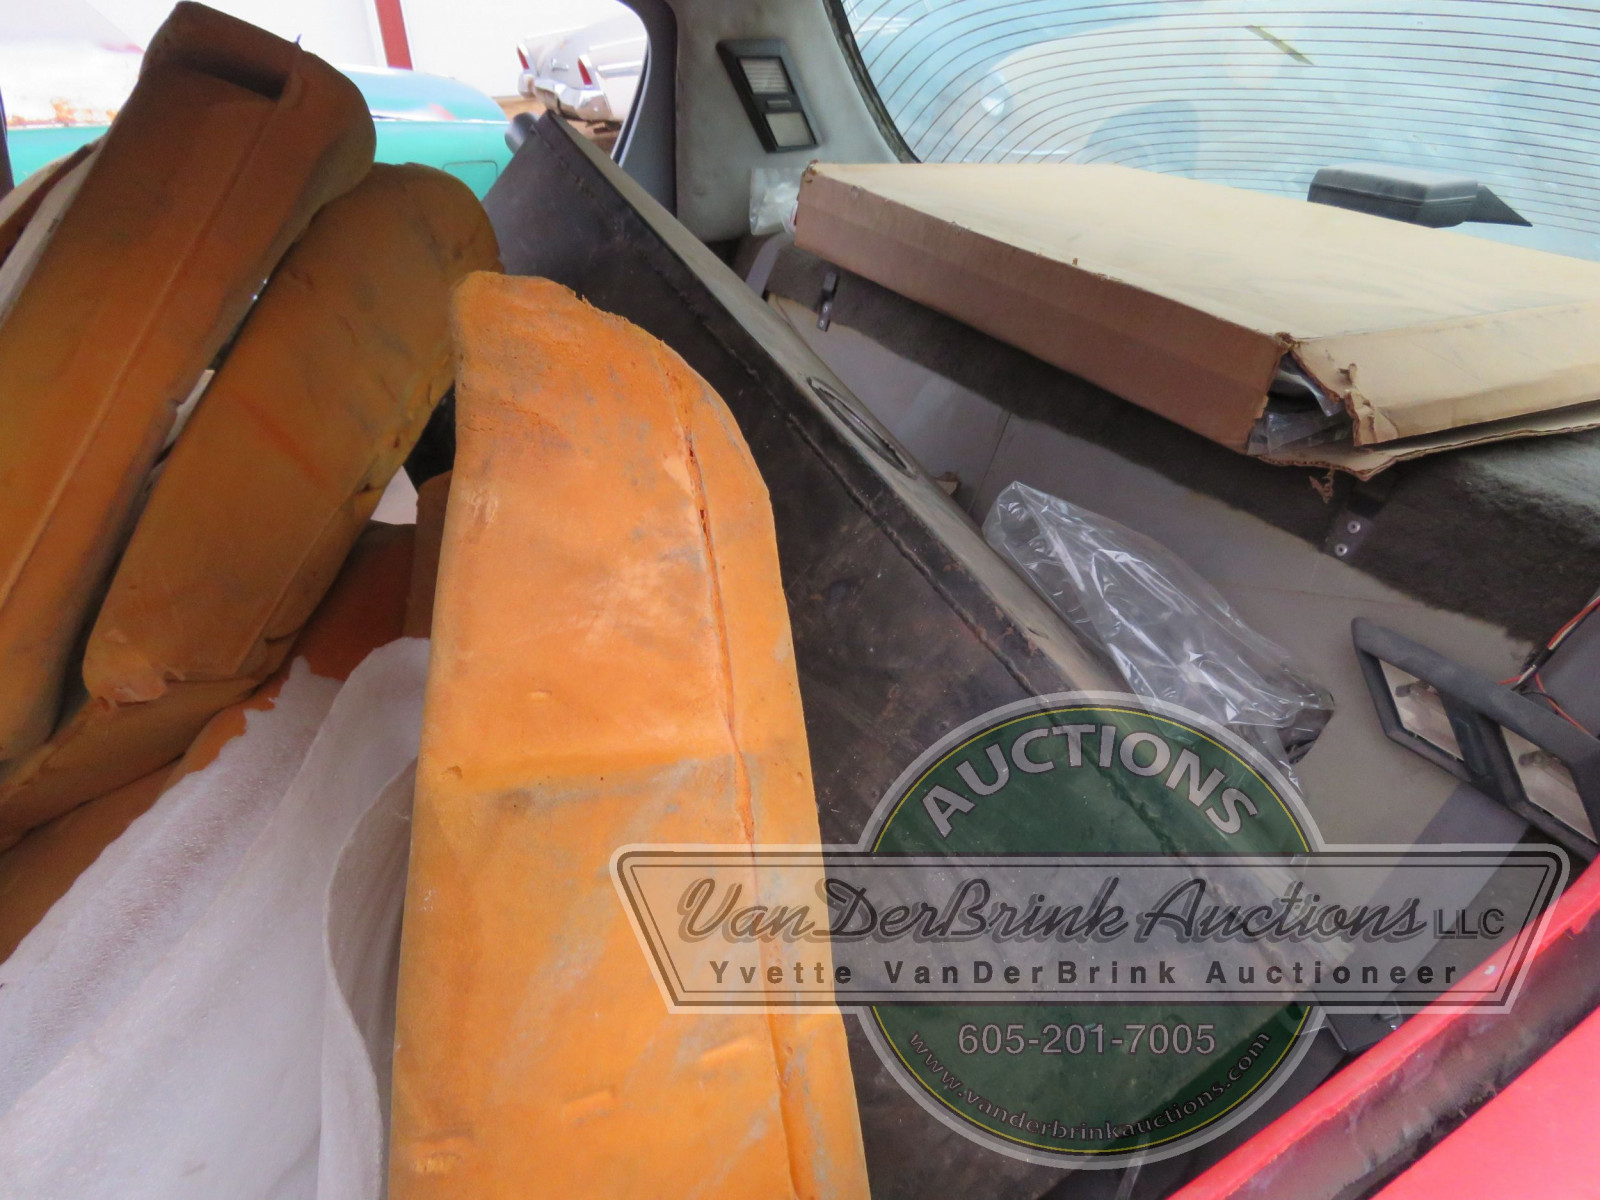 1990 Studebaker Avanti 4dr Sedan Project - Image 7